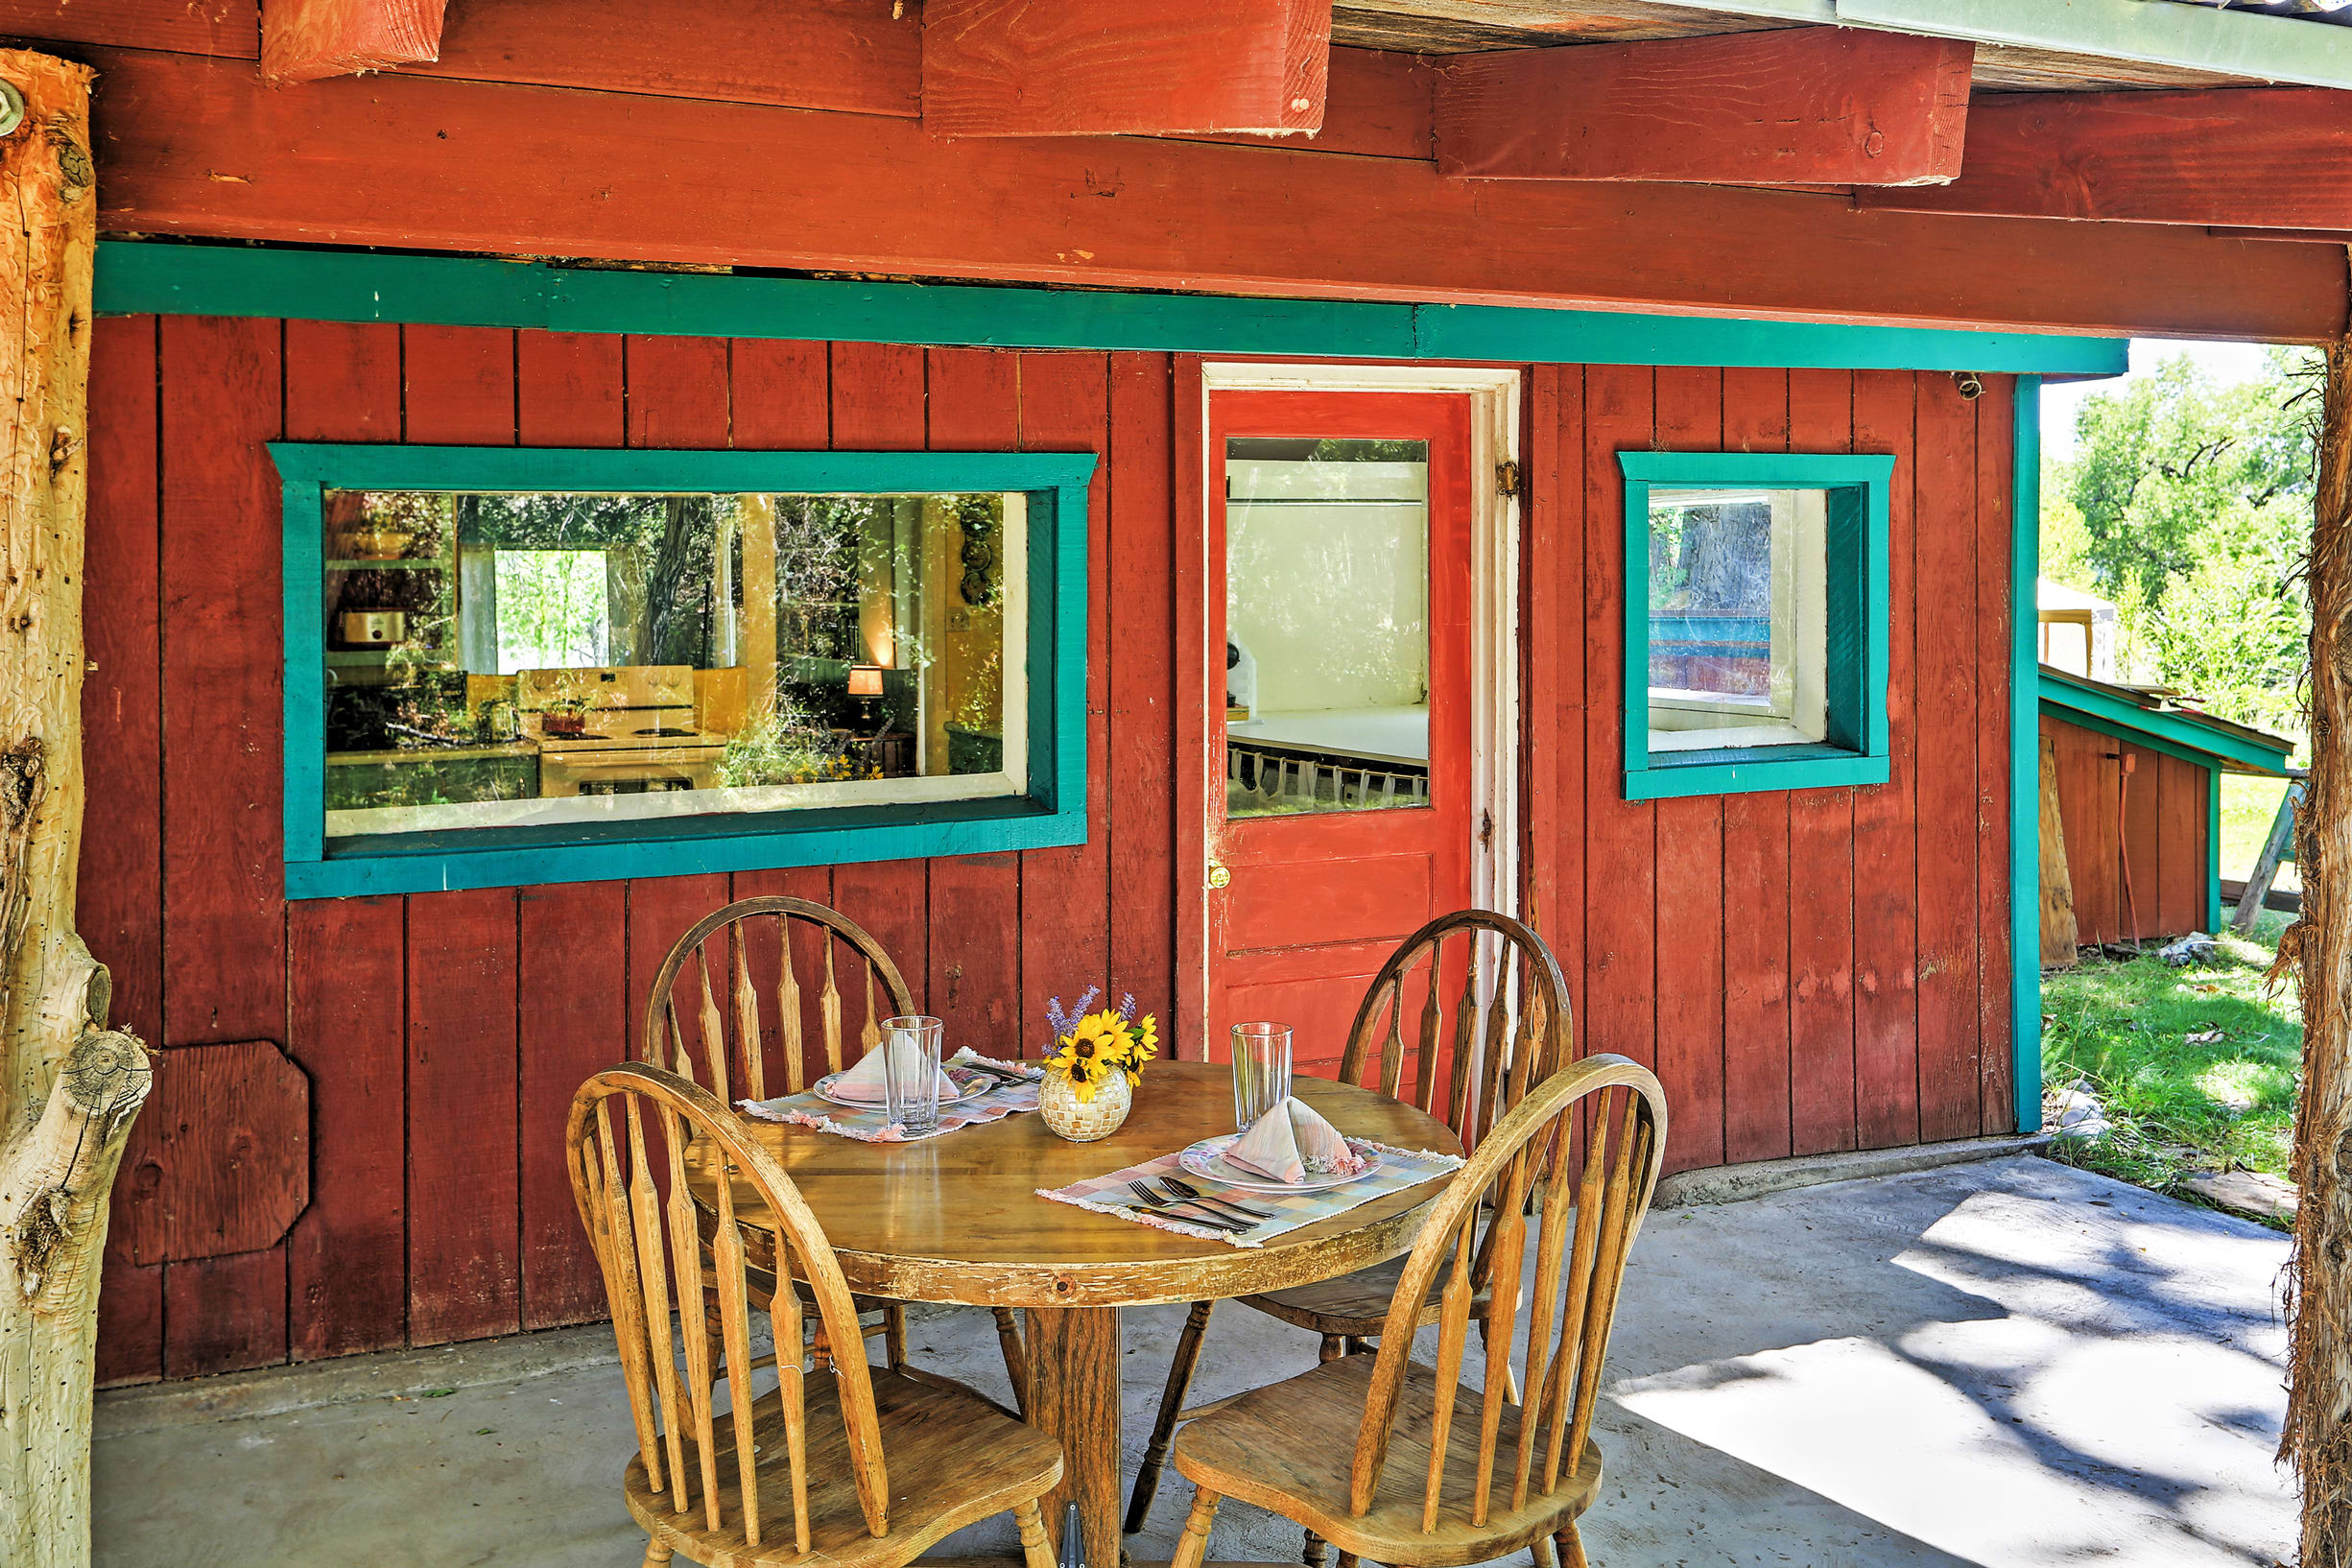 Enjoy meals outside in the shade!